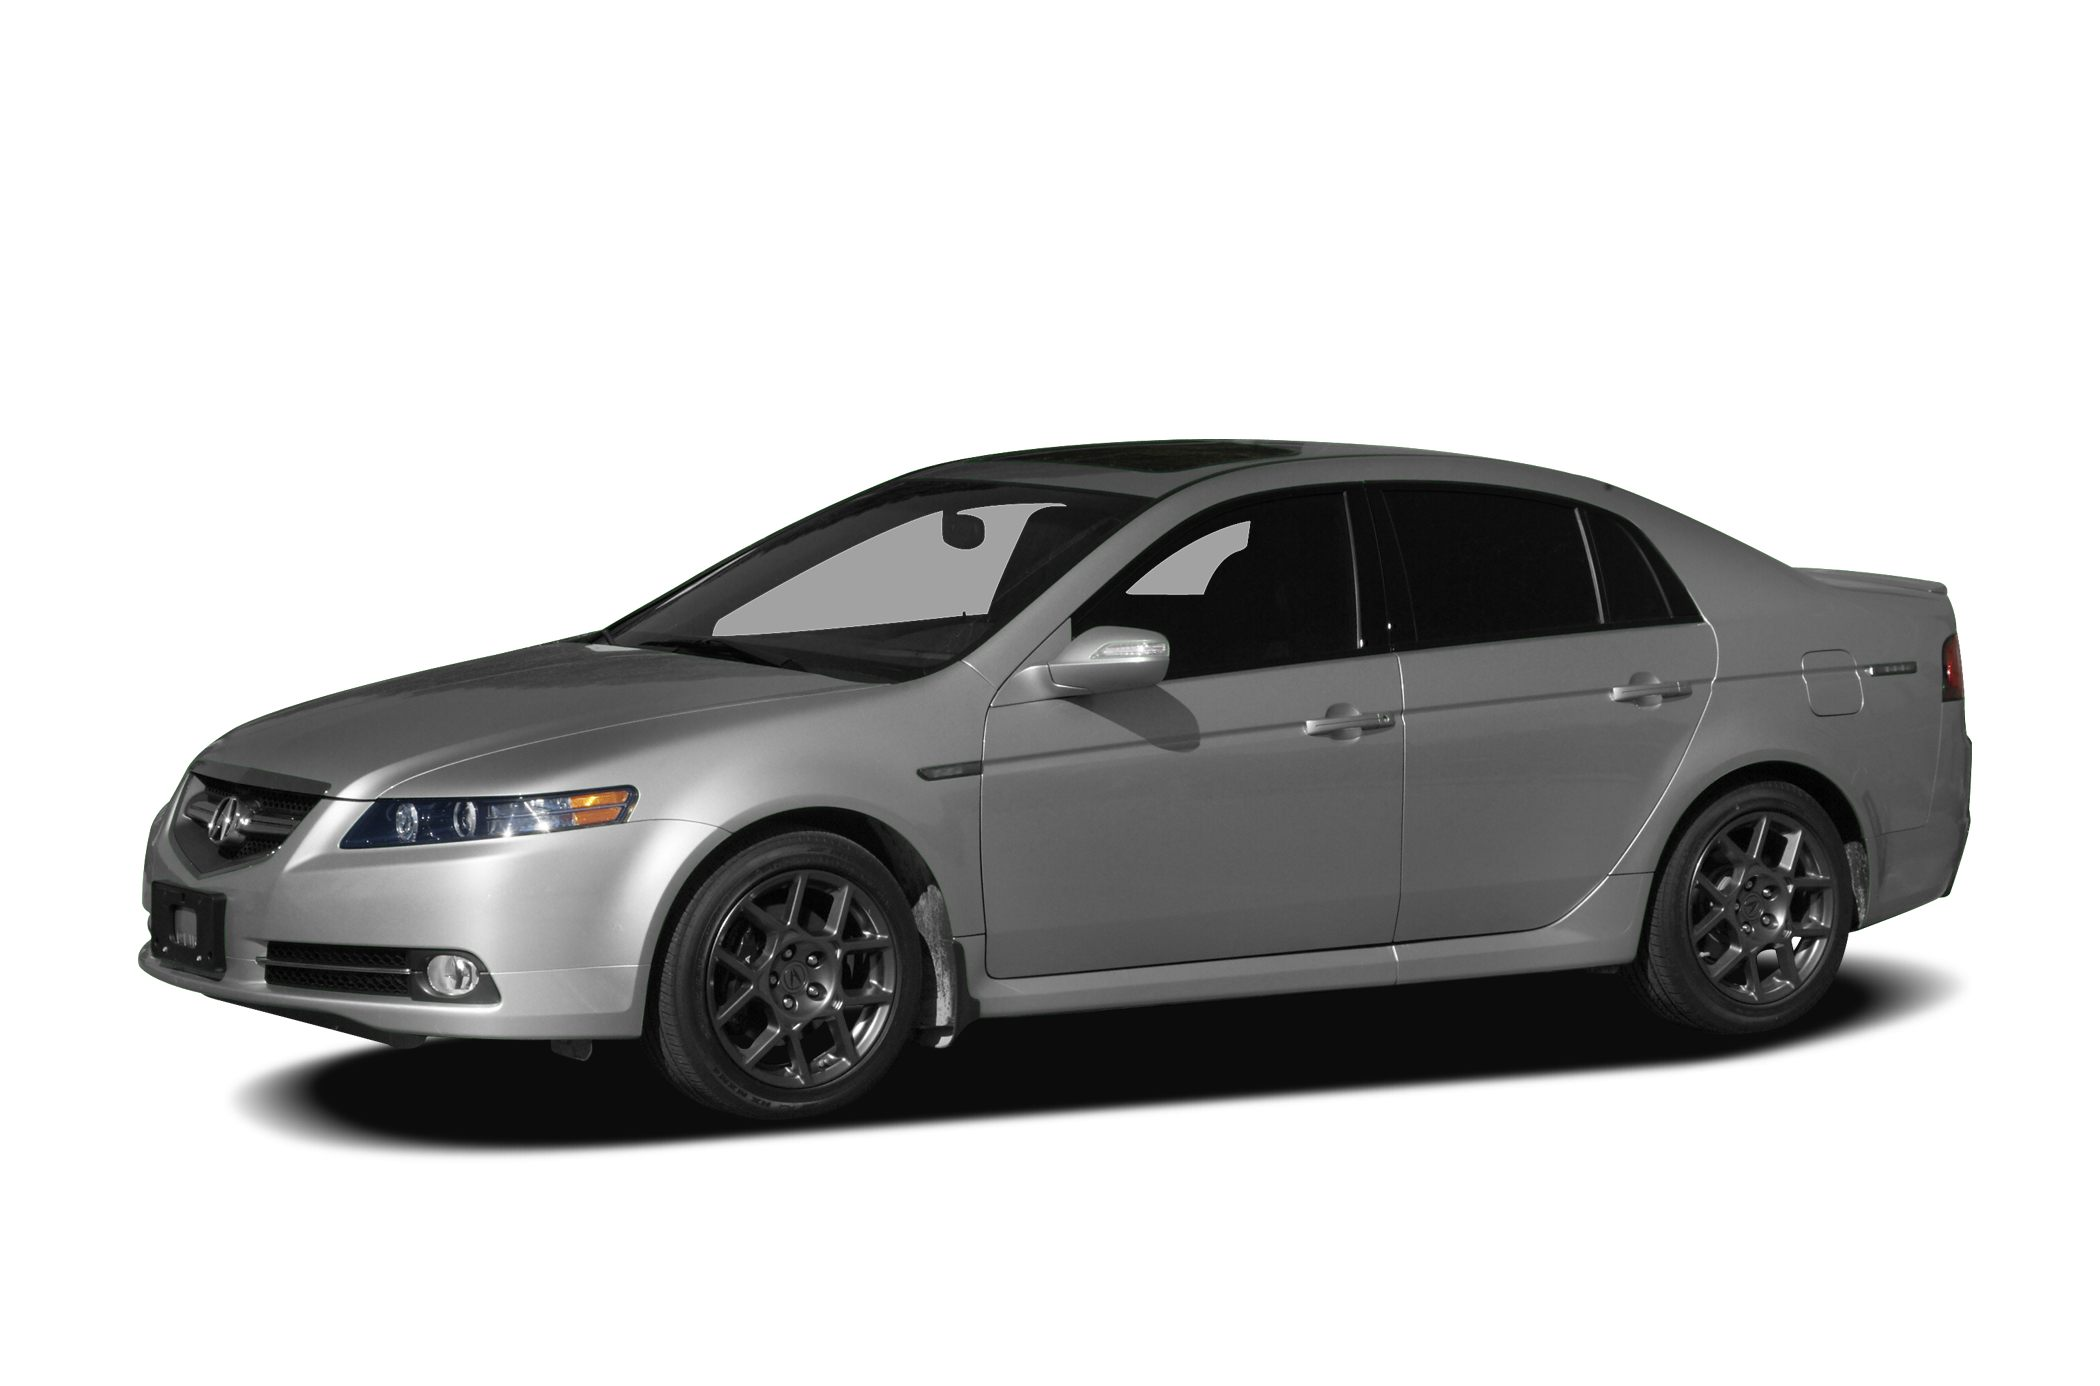 Acura TL Specs And Prices - Acura 2004 tl price